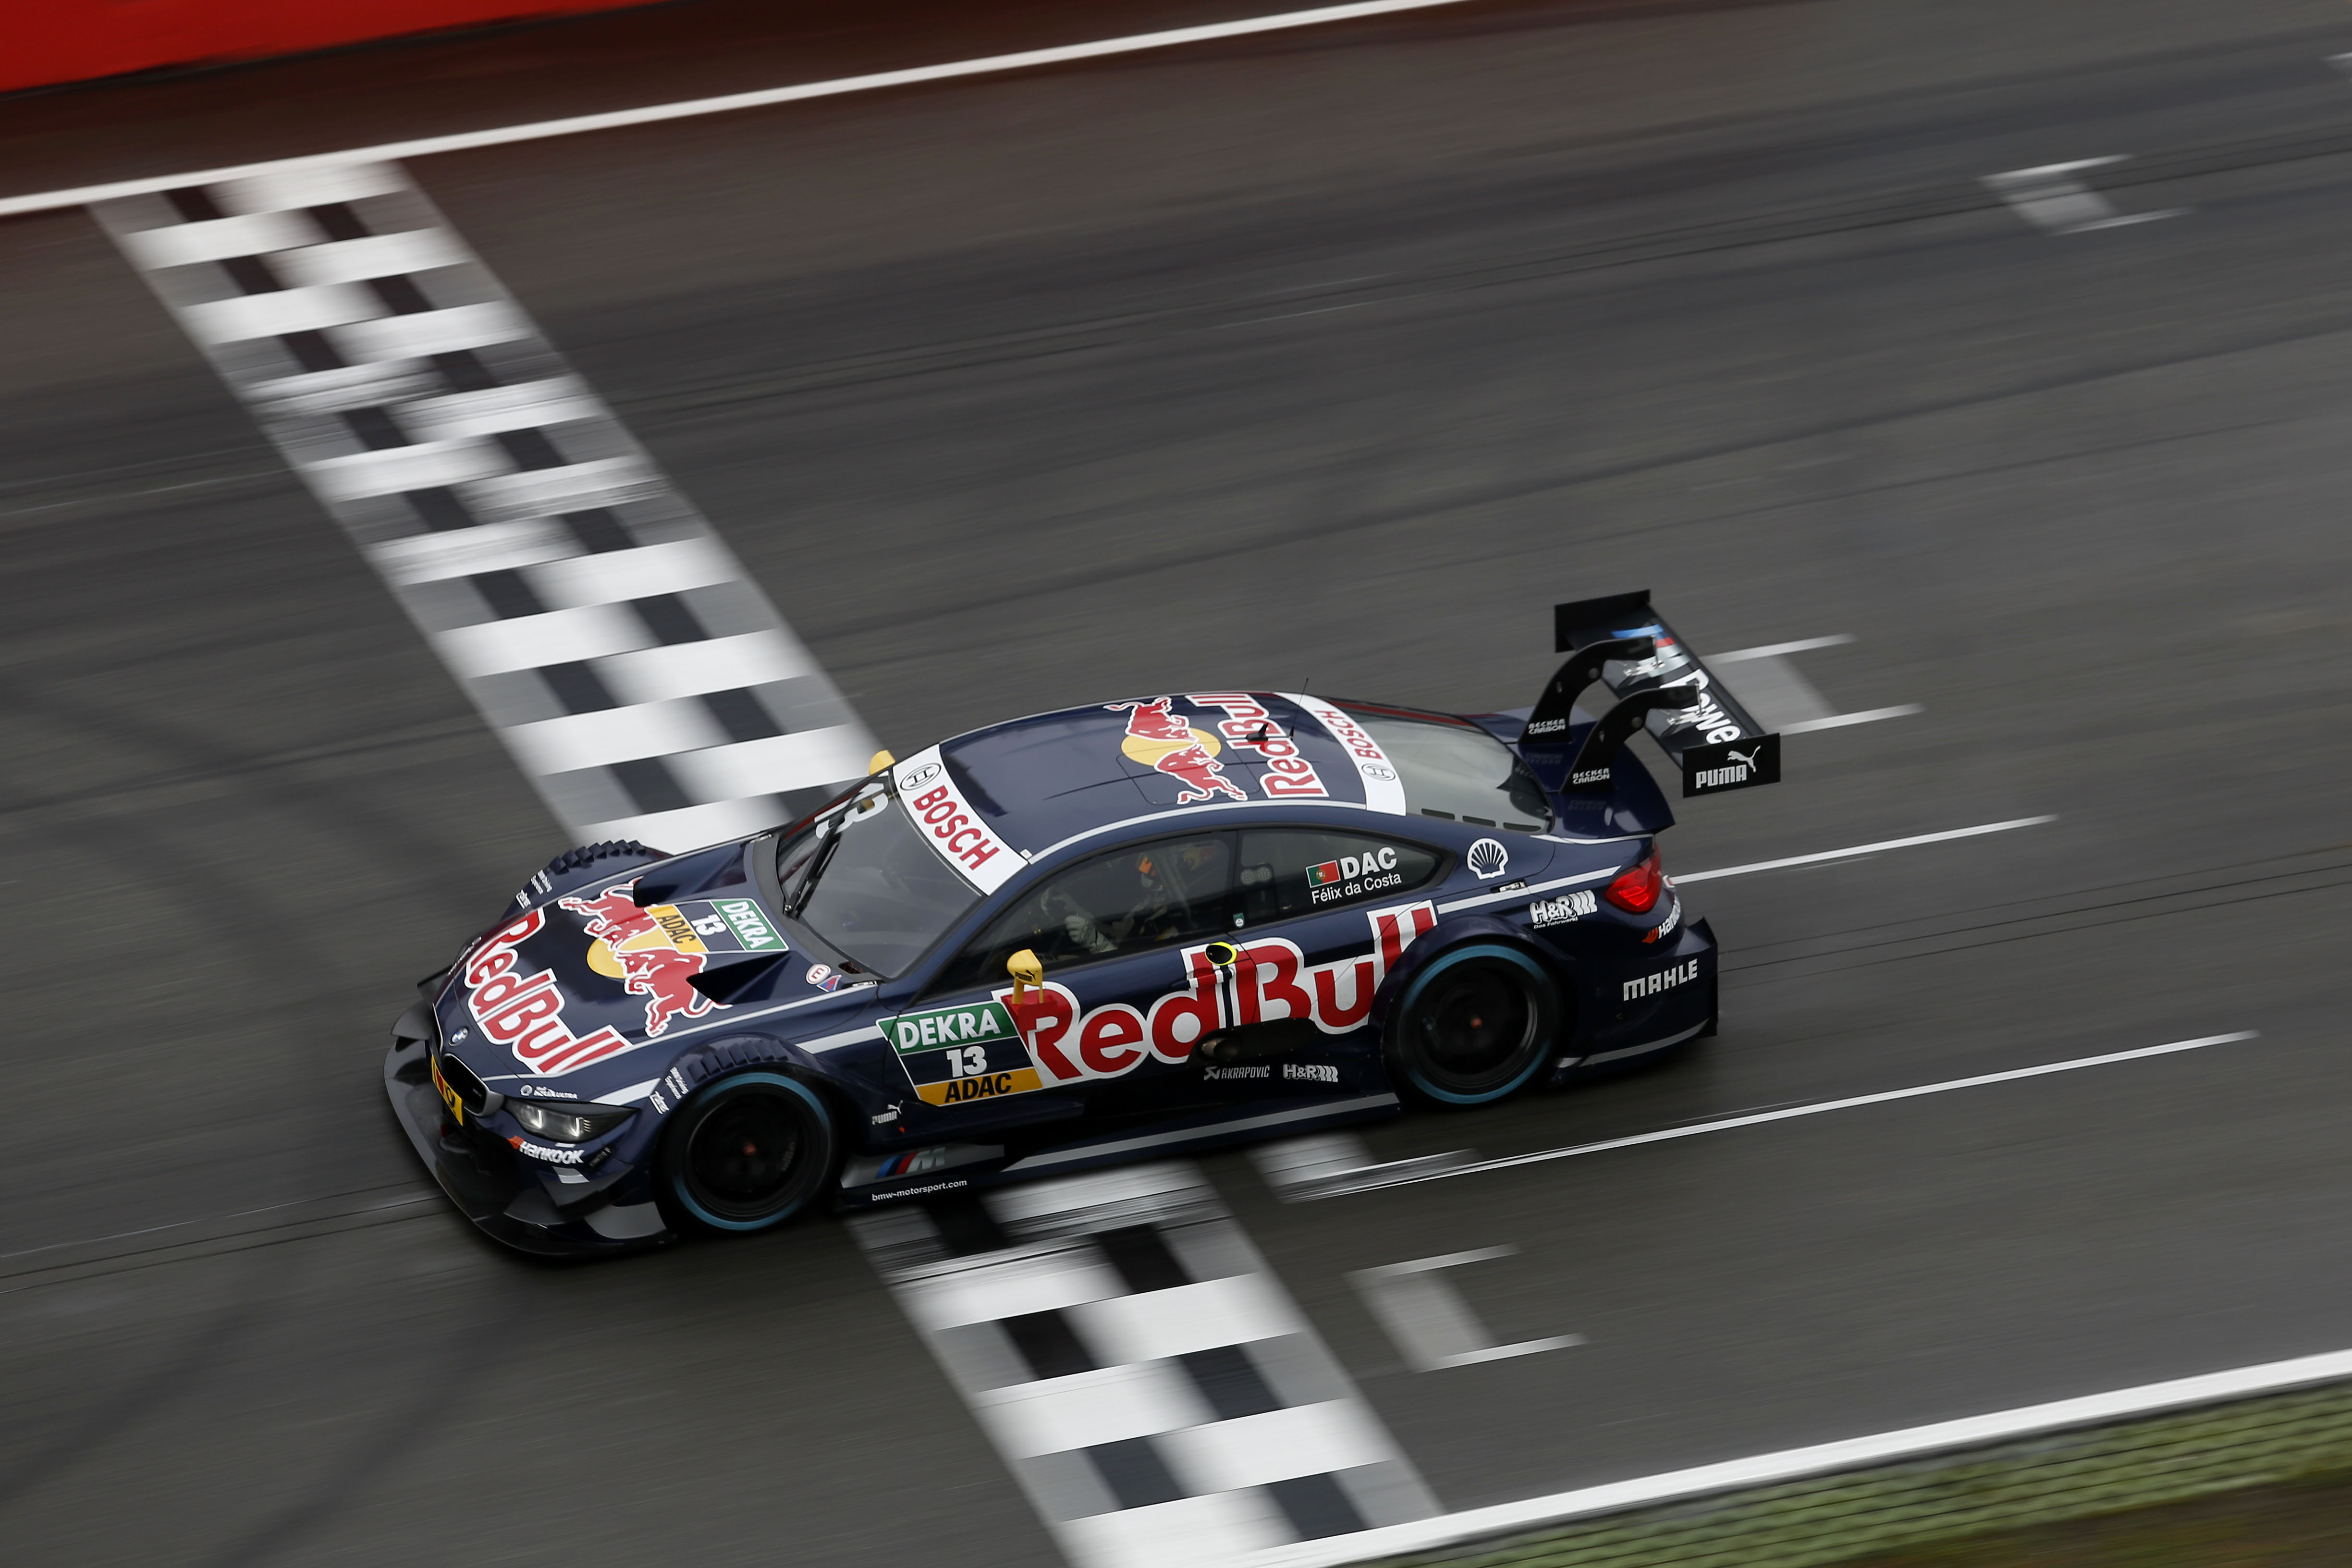 Dtm Round 1, Hockenheimring, Germany